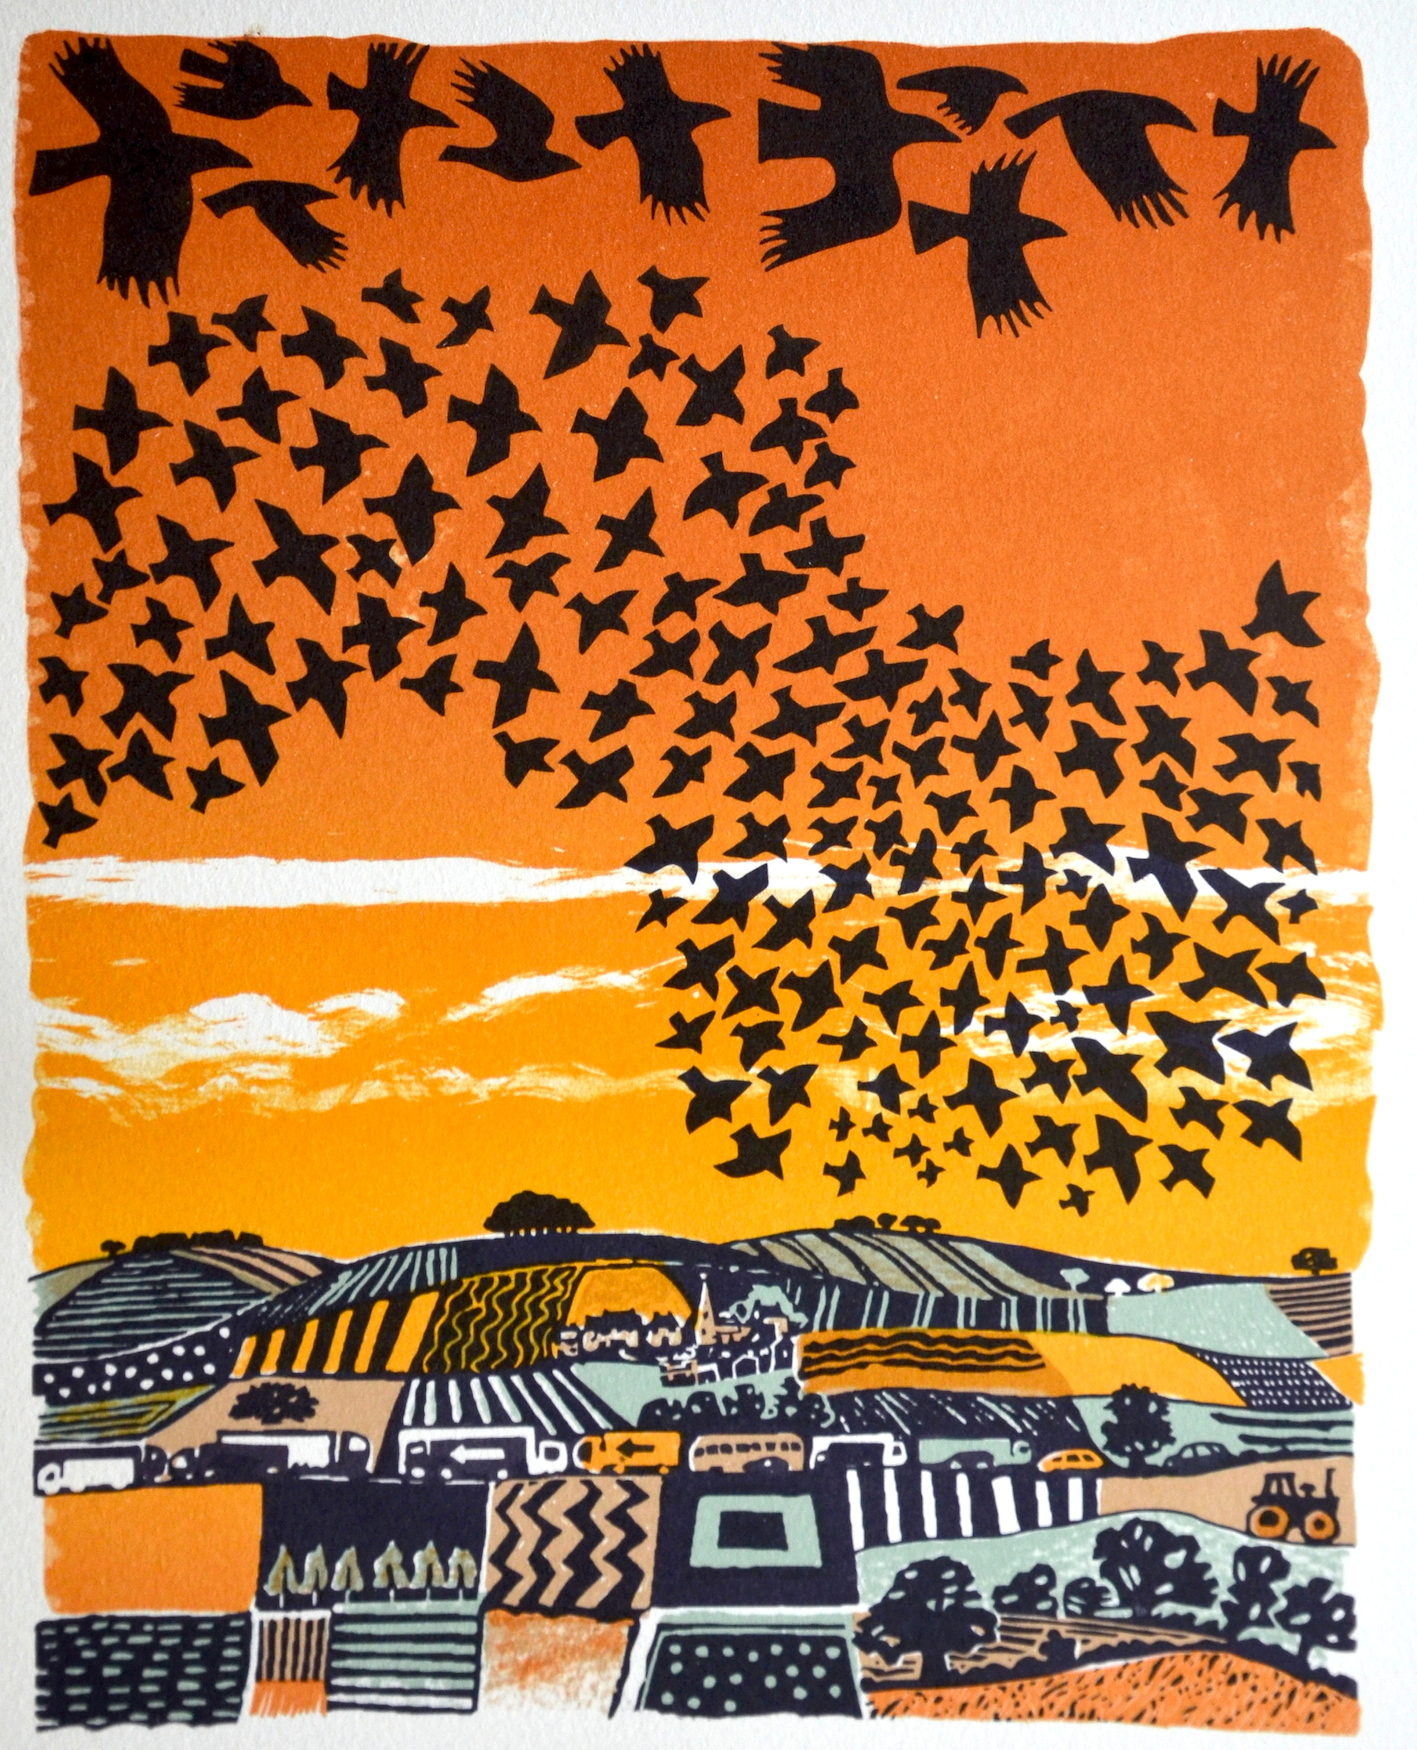 Going to Roost   lithograph   edition of 50  30 x 25 cm  £185 framed, £95 unframed